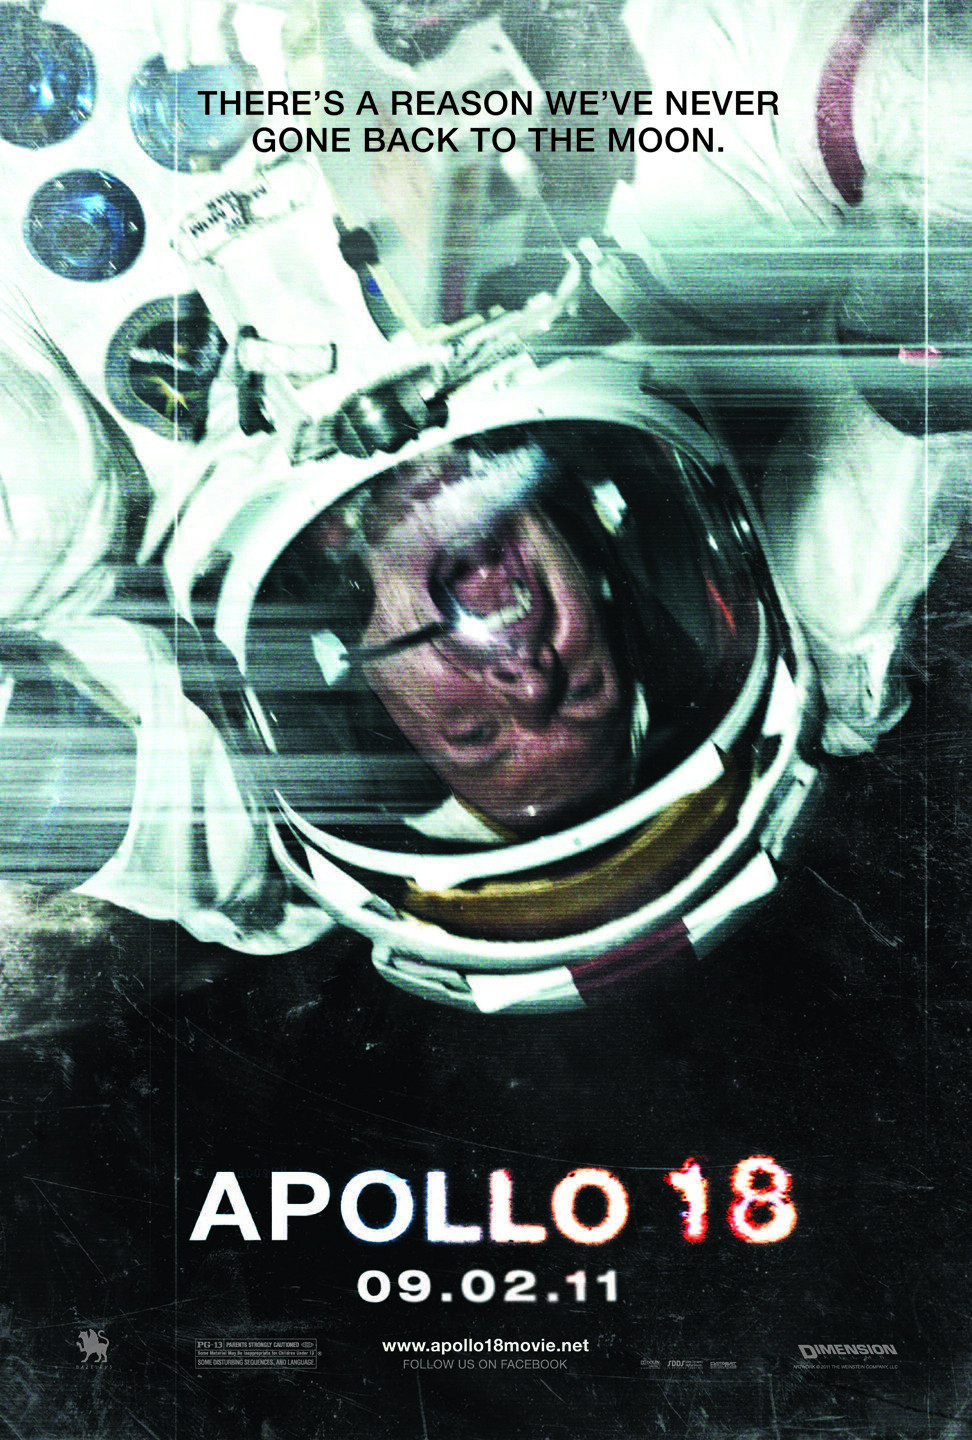 NASA on 'Apollo 18' Authenticity: The Film Is Only a Work of Fiction